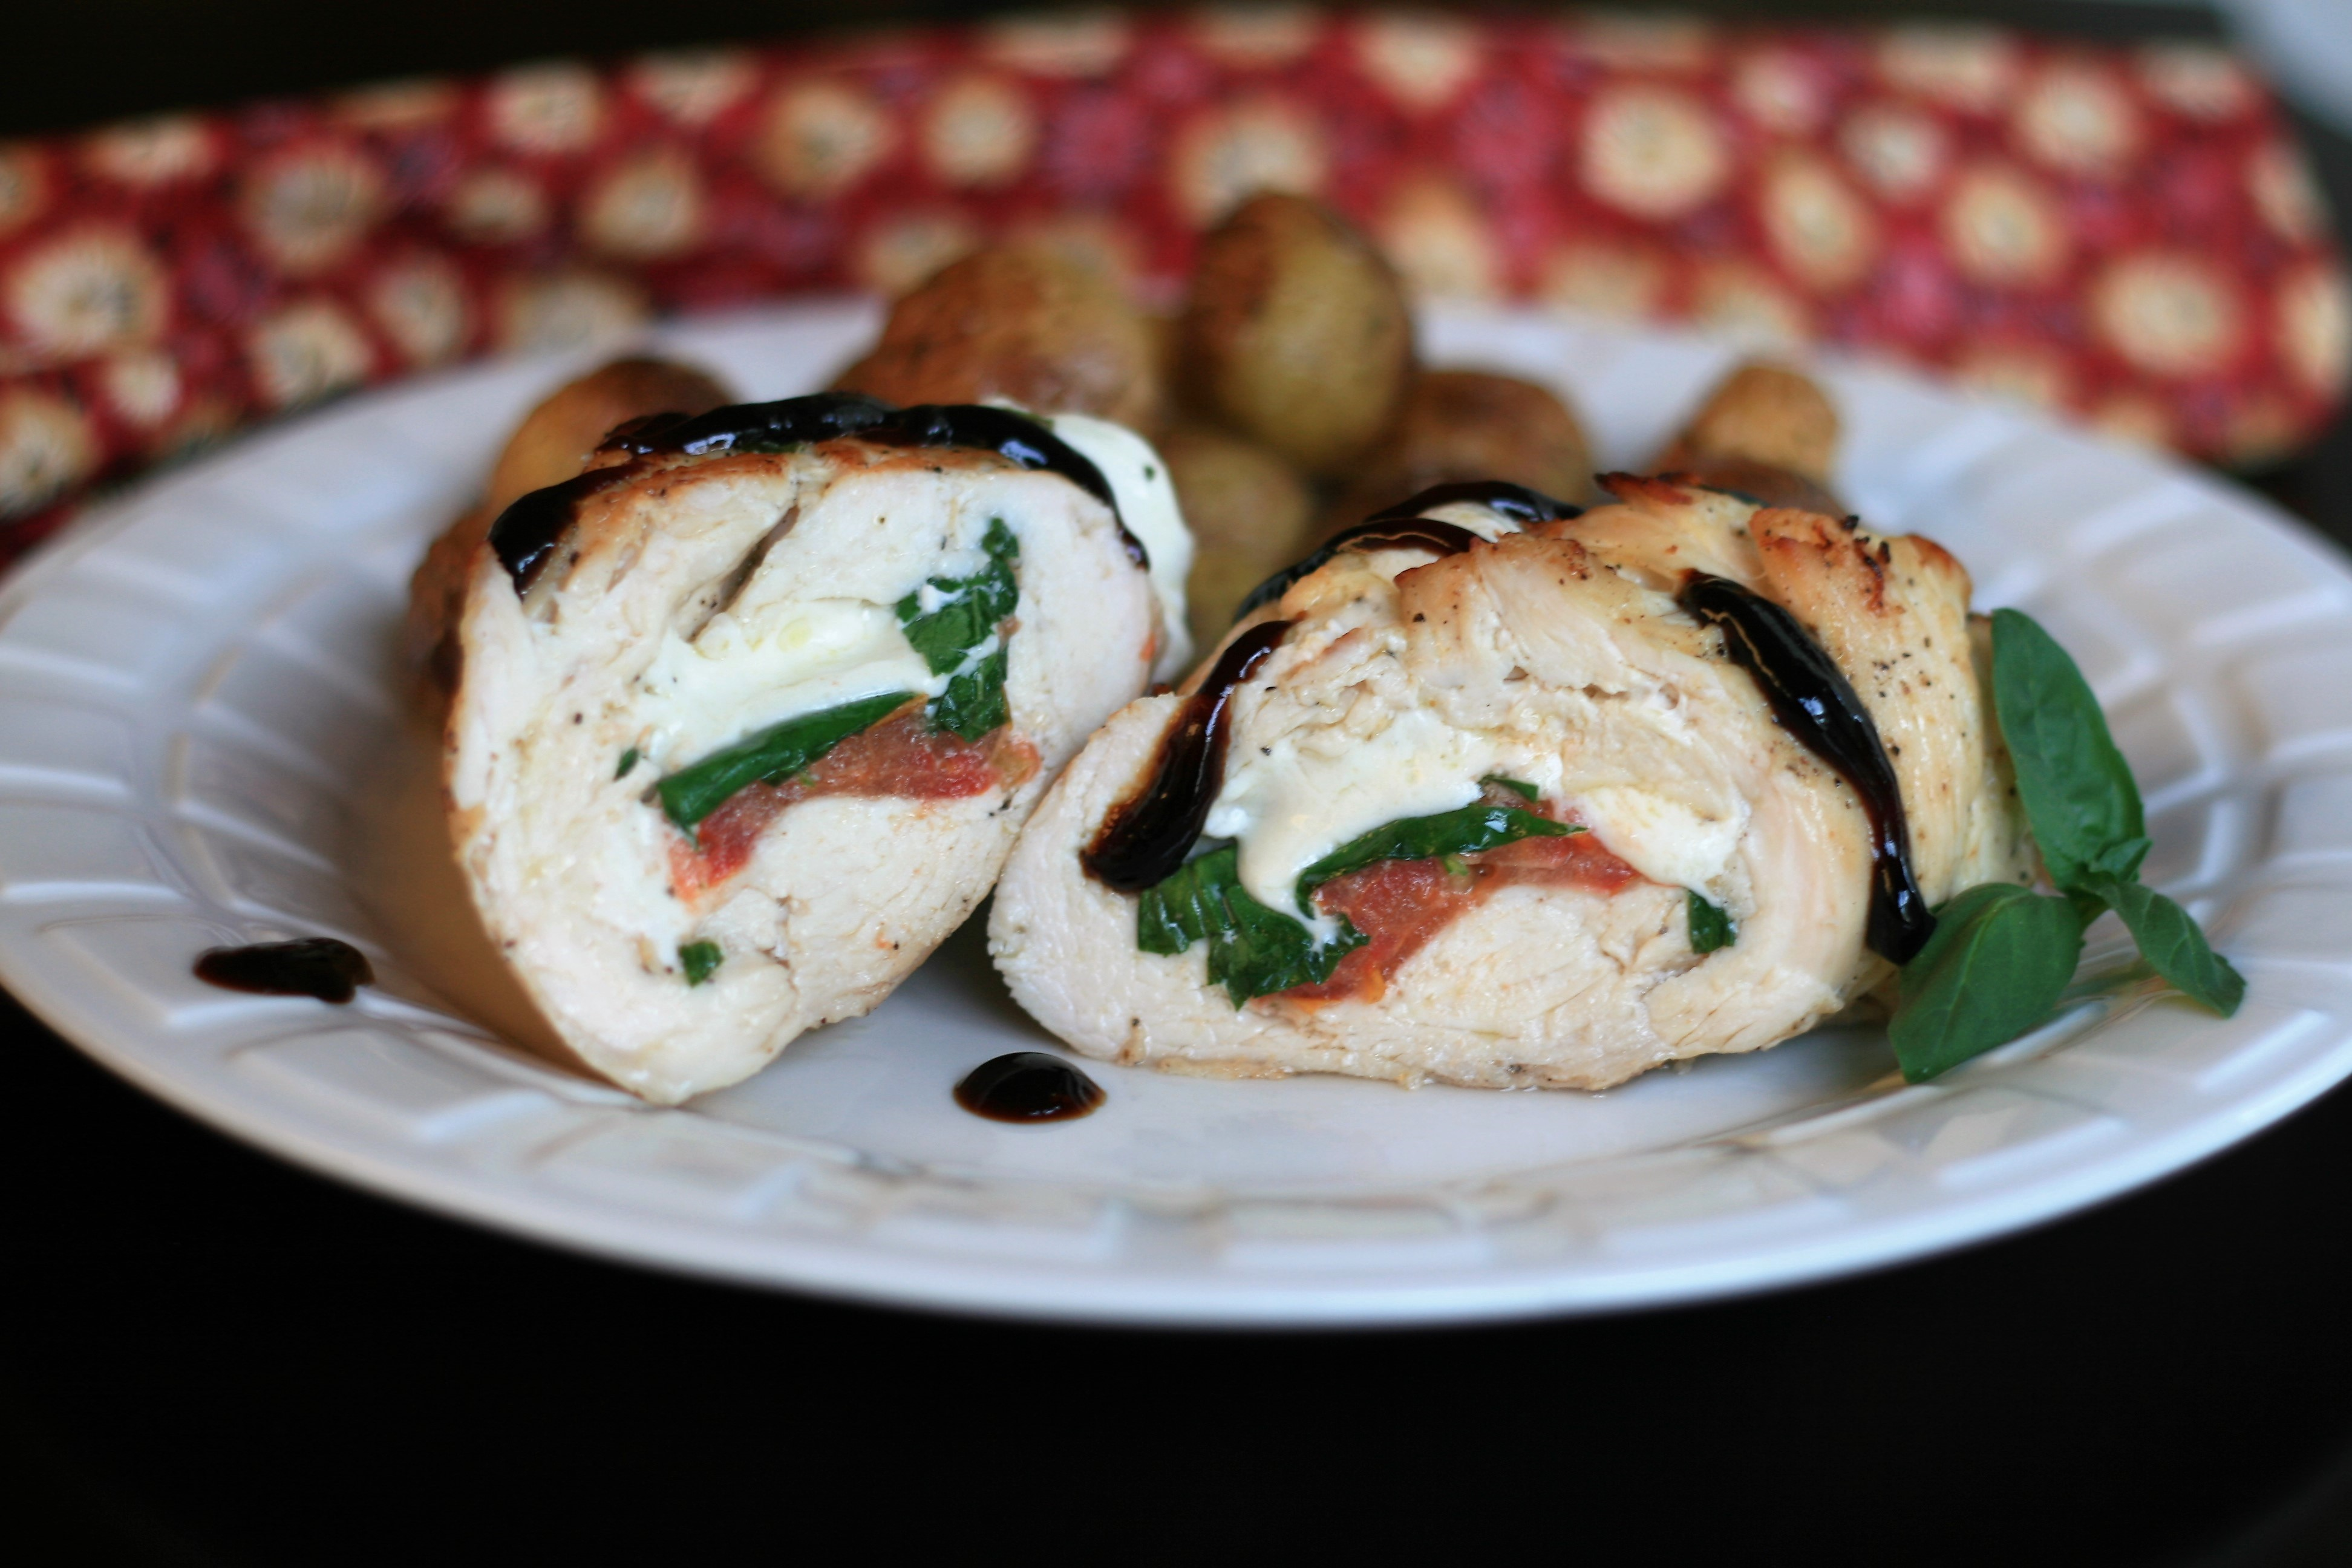 """""""This impressive stuffed chicken breast dish is easy to put together and so impressive!"""" says SunnyDaysNora. """"Perfect for any meal whether for family or company!"""""""